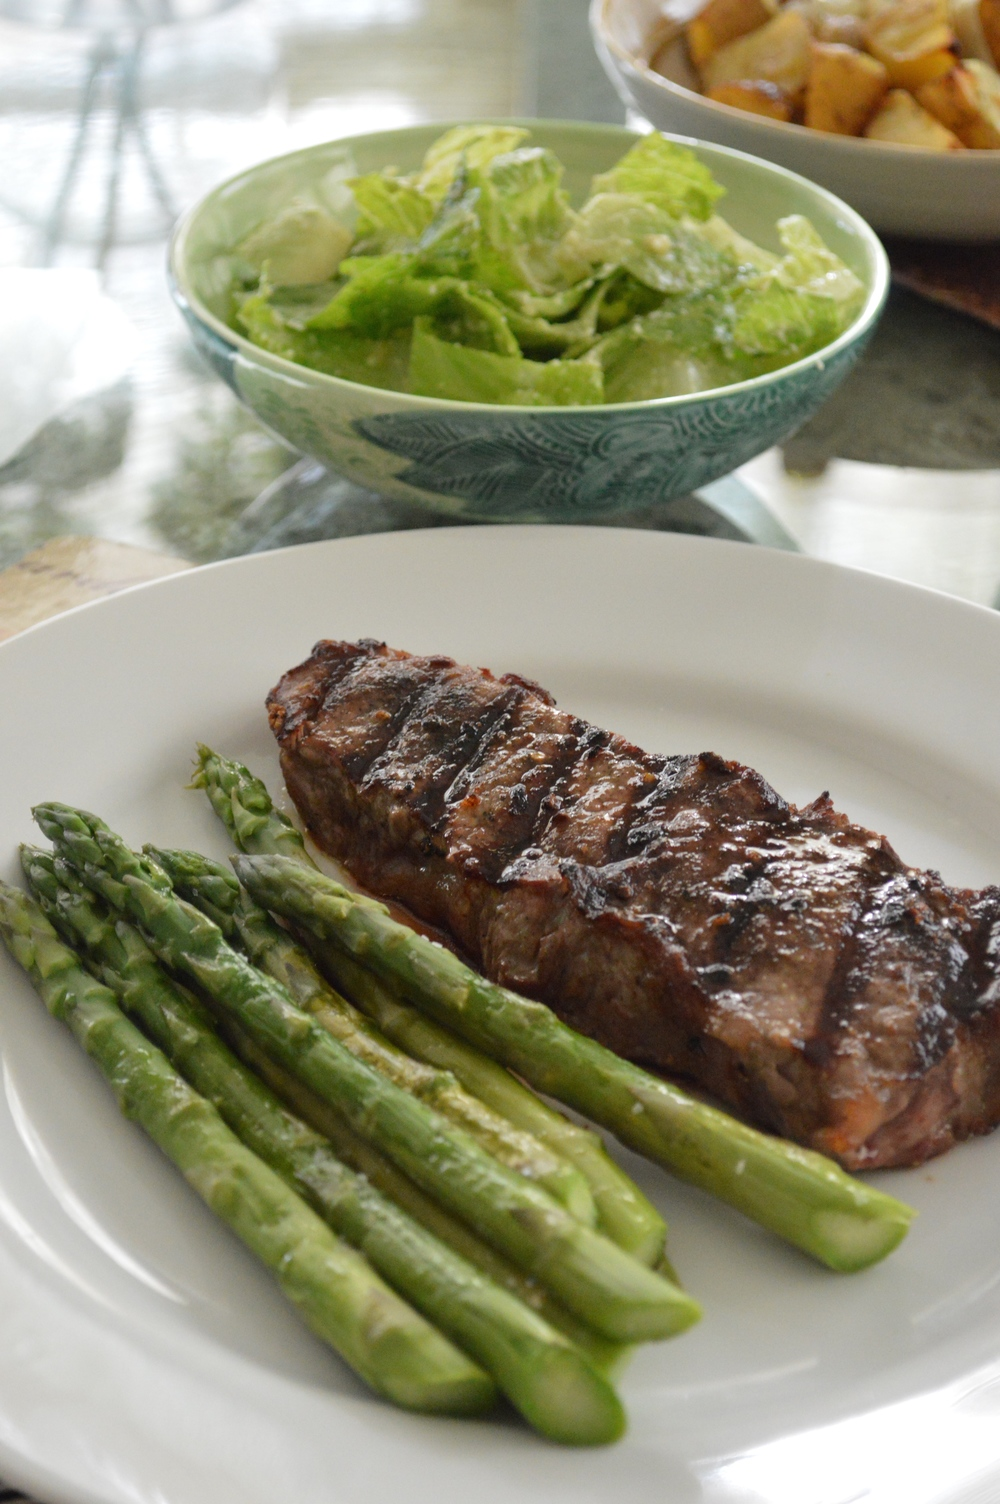 LaurenSchwaiger-Blog-Steak-Asparagus-Dinner.jpg